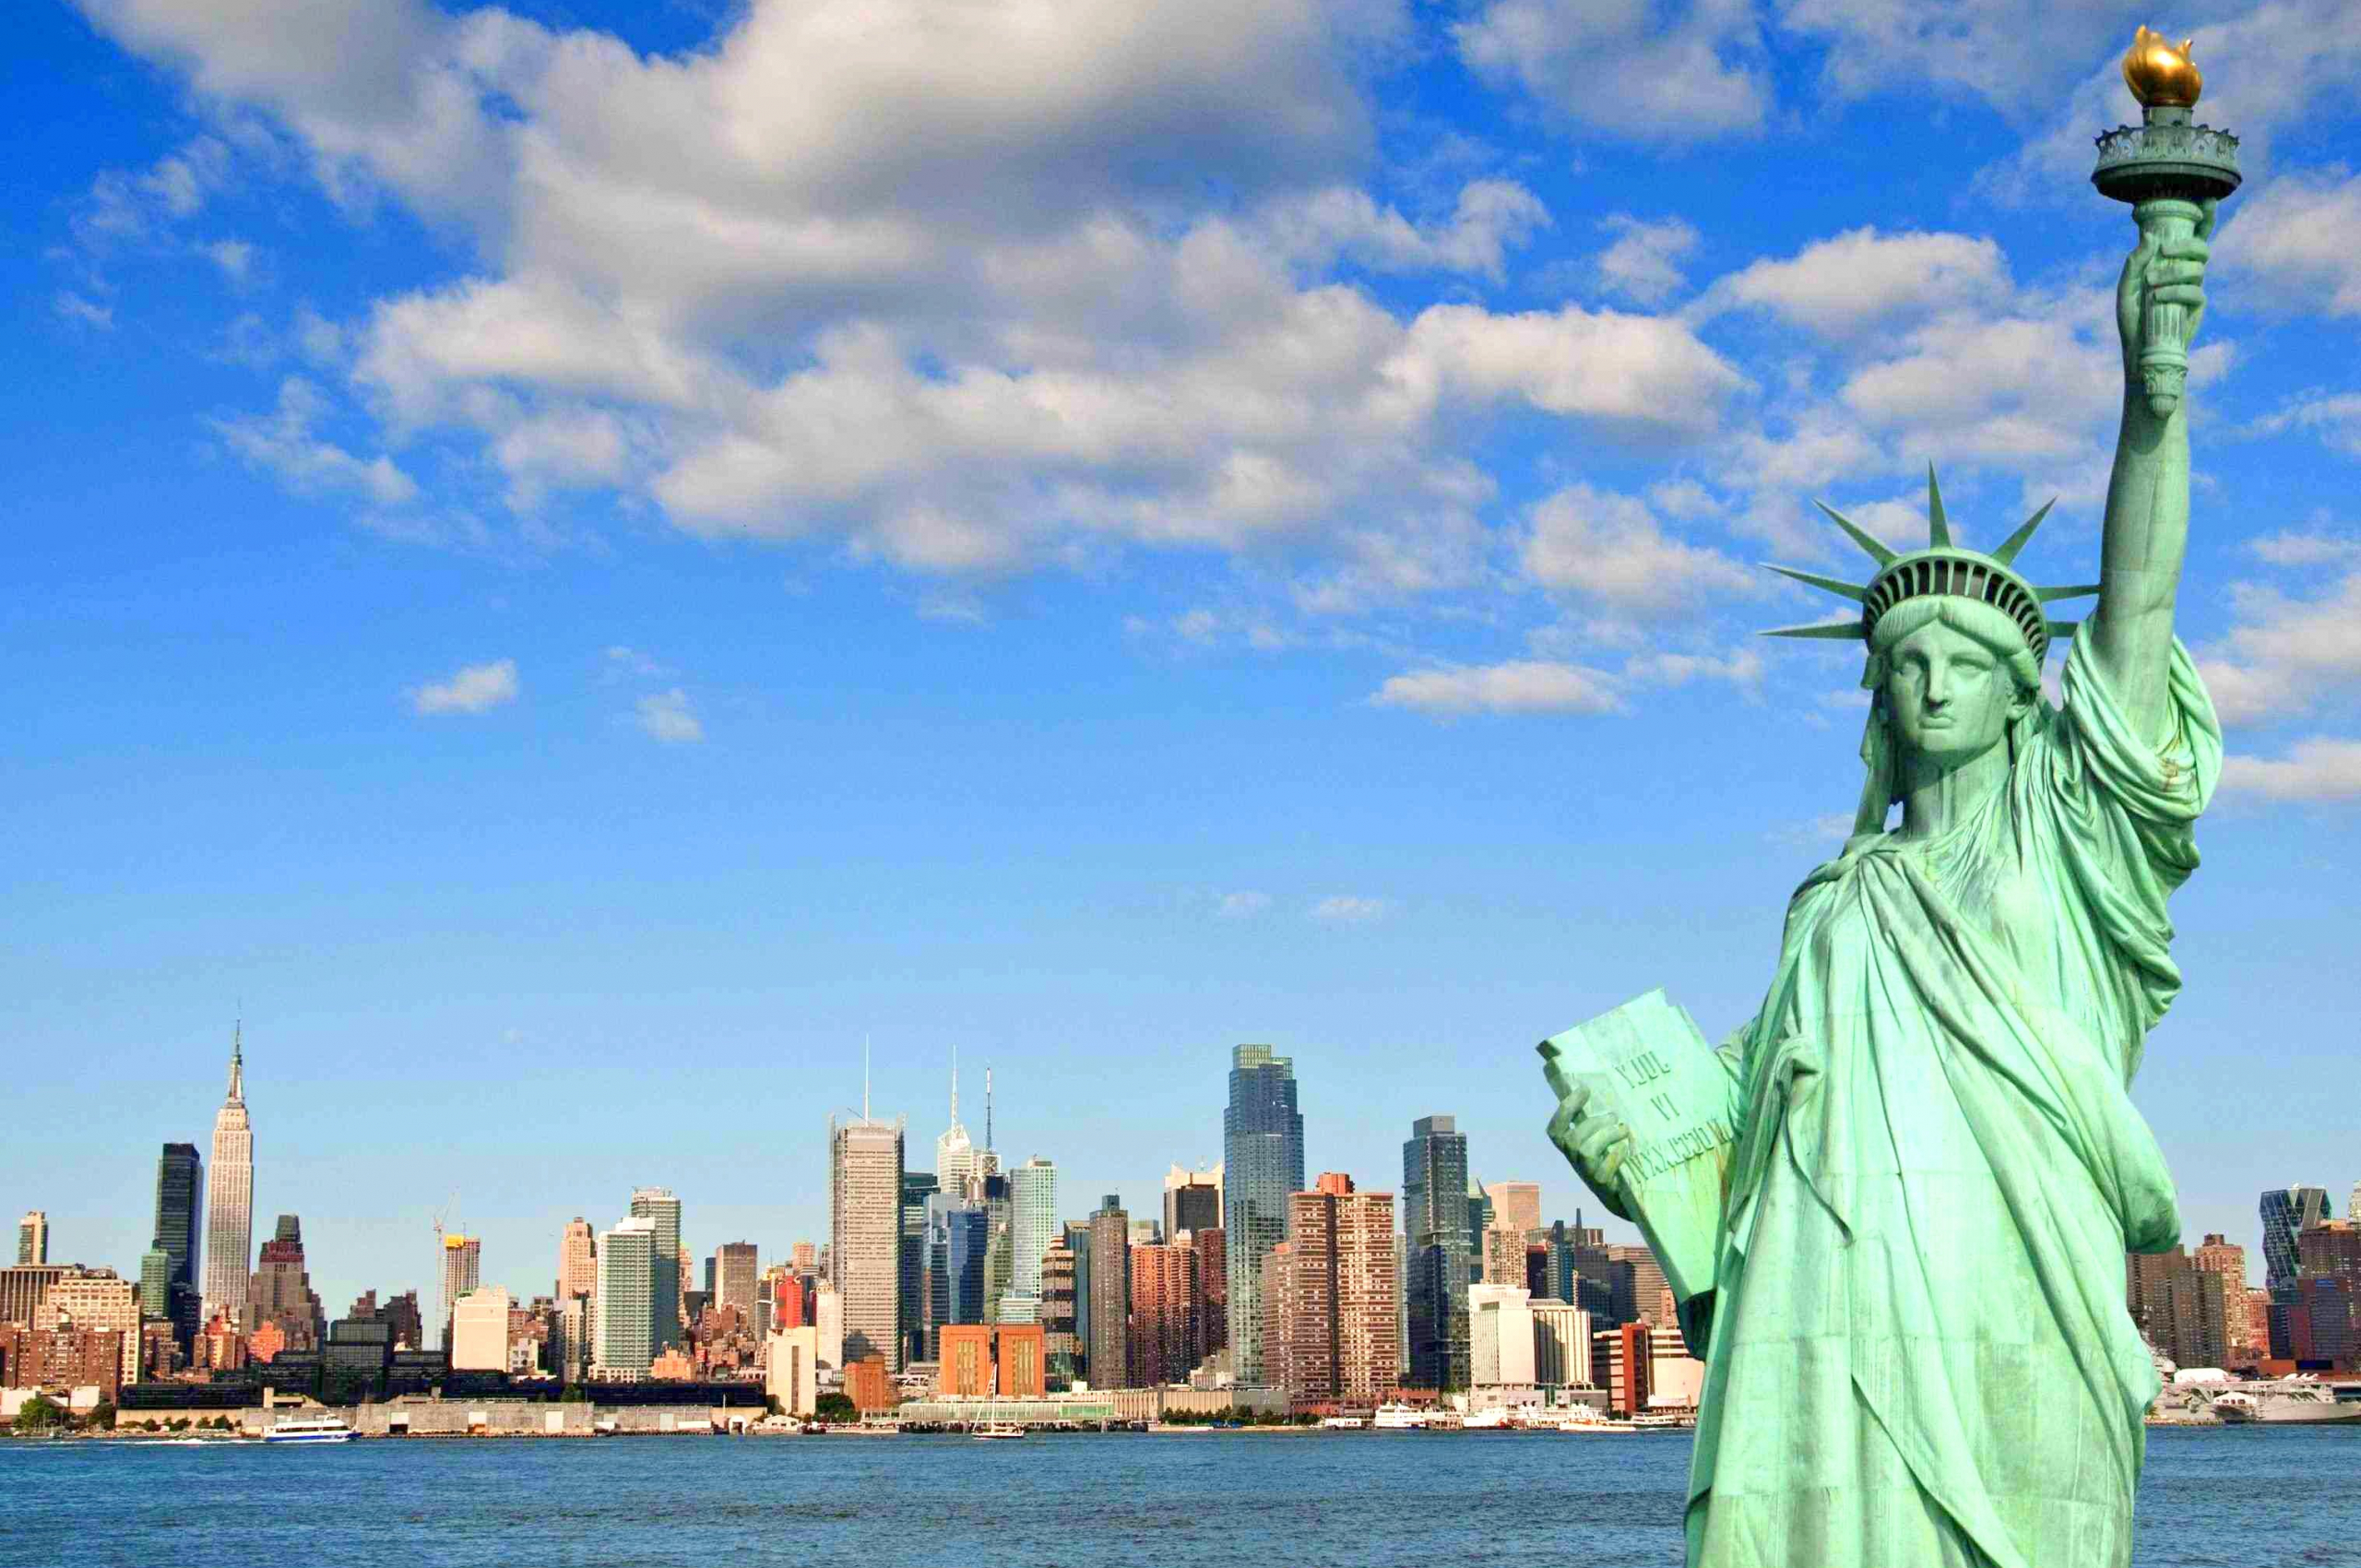 Free Download New York Wallpaper Statue Of Liberty Best Of Our Magical Planet 3034x2022 For Your Desktop Mobile Tablet Explore 22 Wallpaper New York New York Wallpaper Backgrounds New